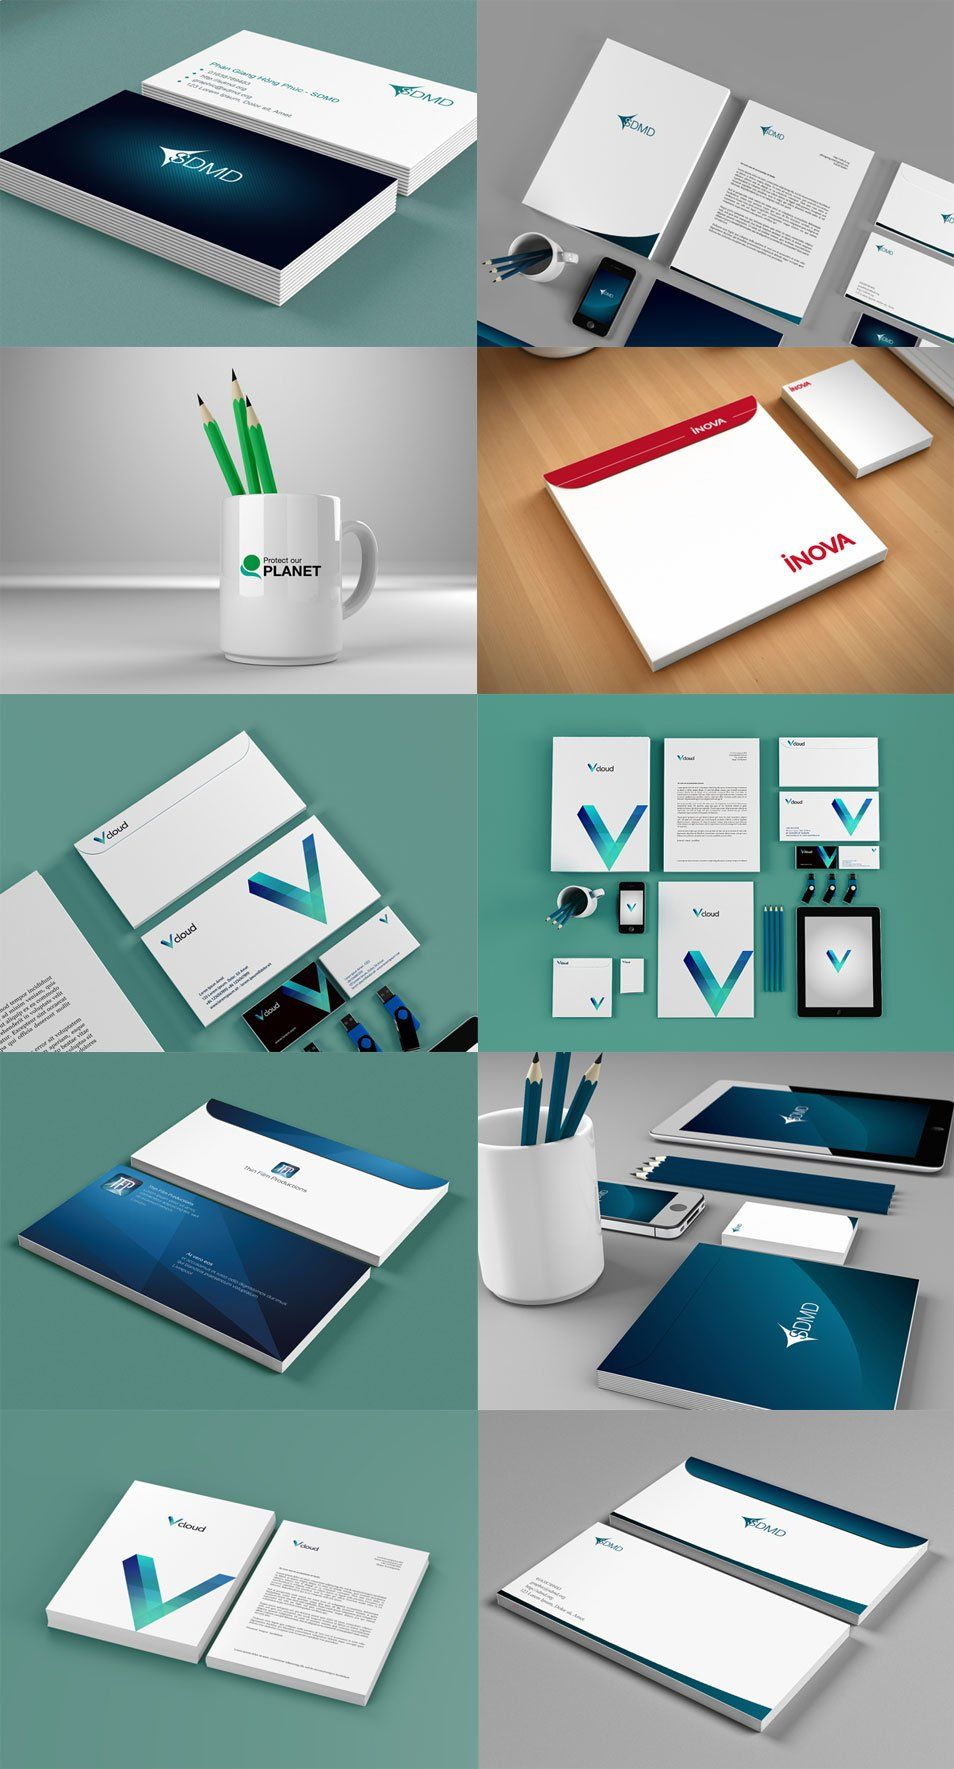 300 Free Mockups For Graphic Designers To Showcase Their Projects In 2015 Graphic Design Mockup Branding Mockups Free Mockup